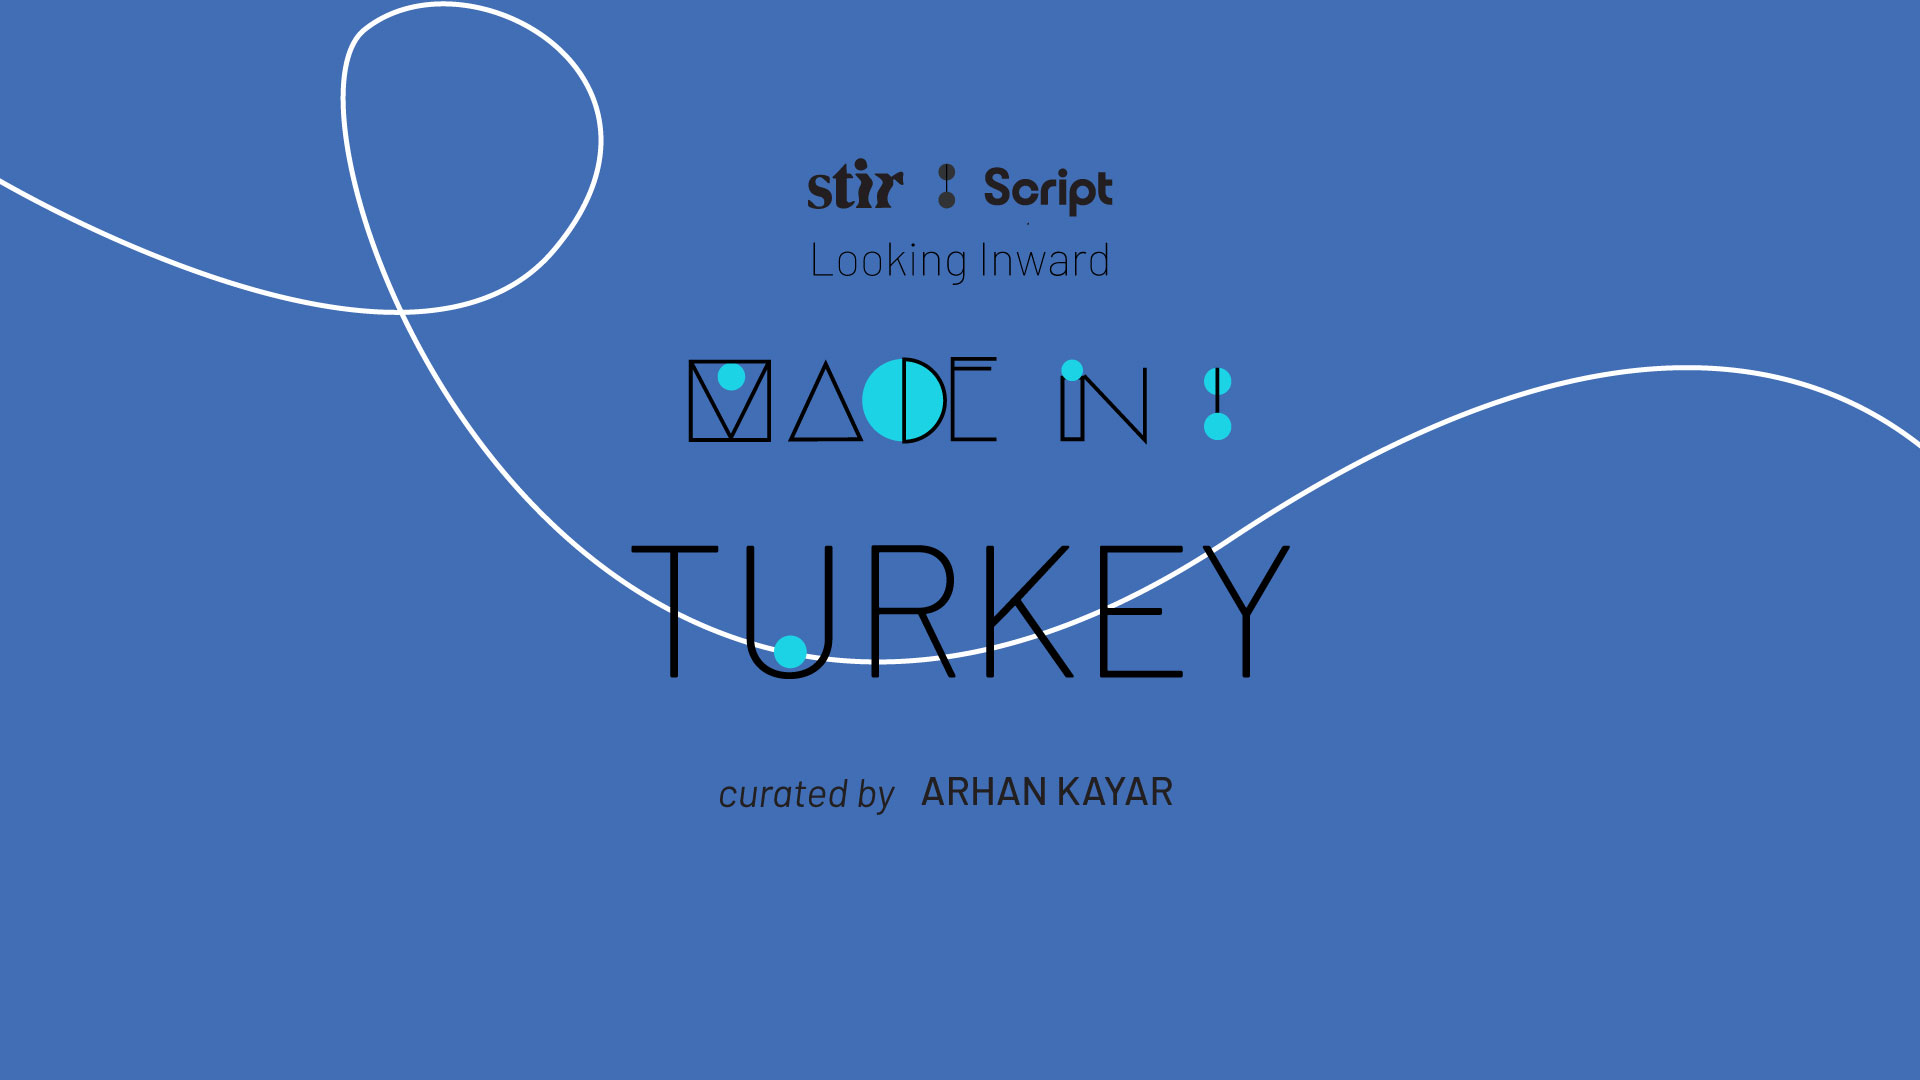 Made in Turkey: Curated by Arhan Kayar